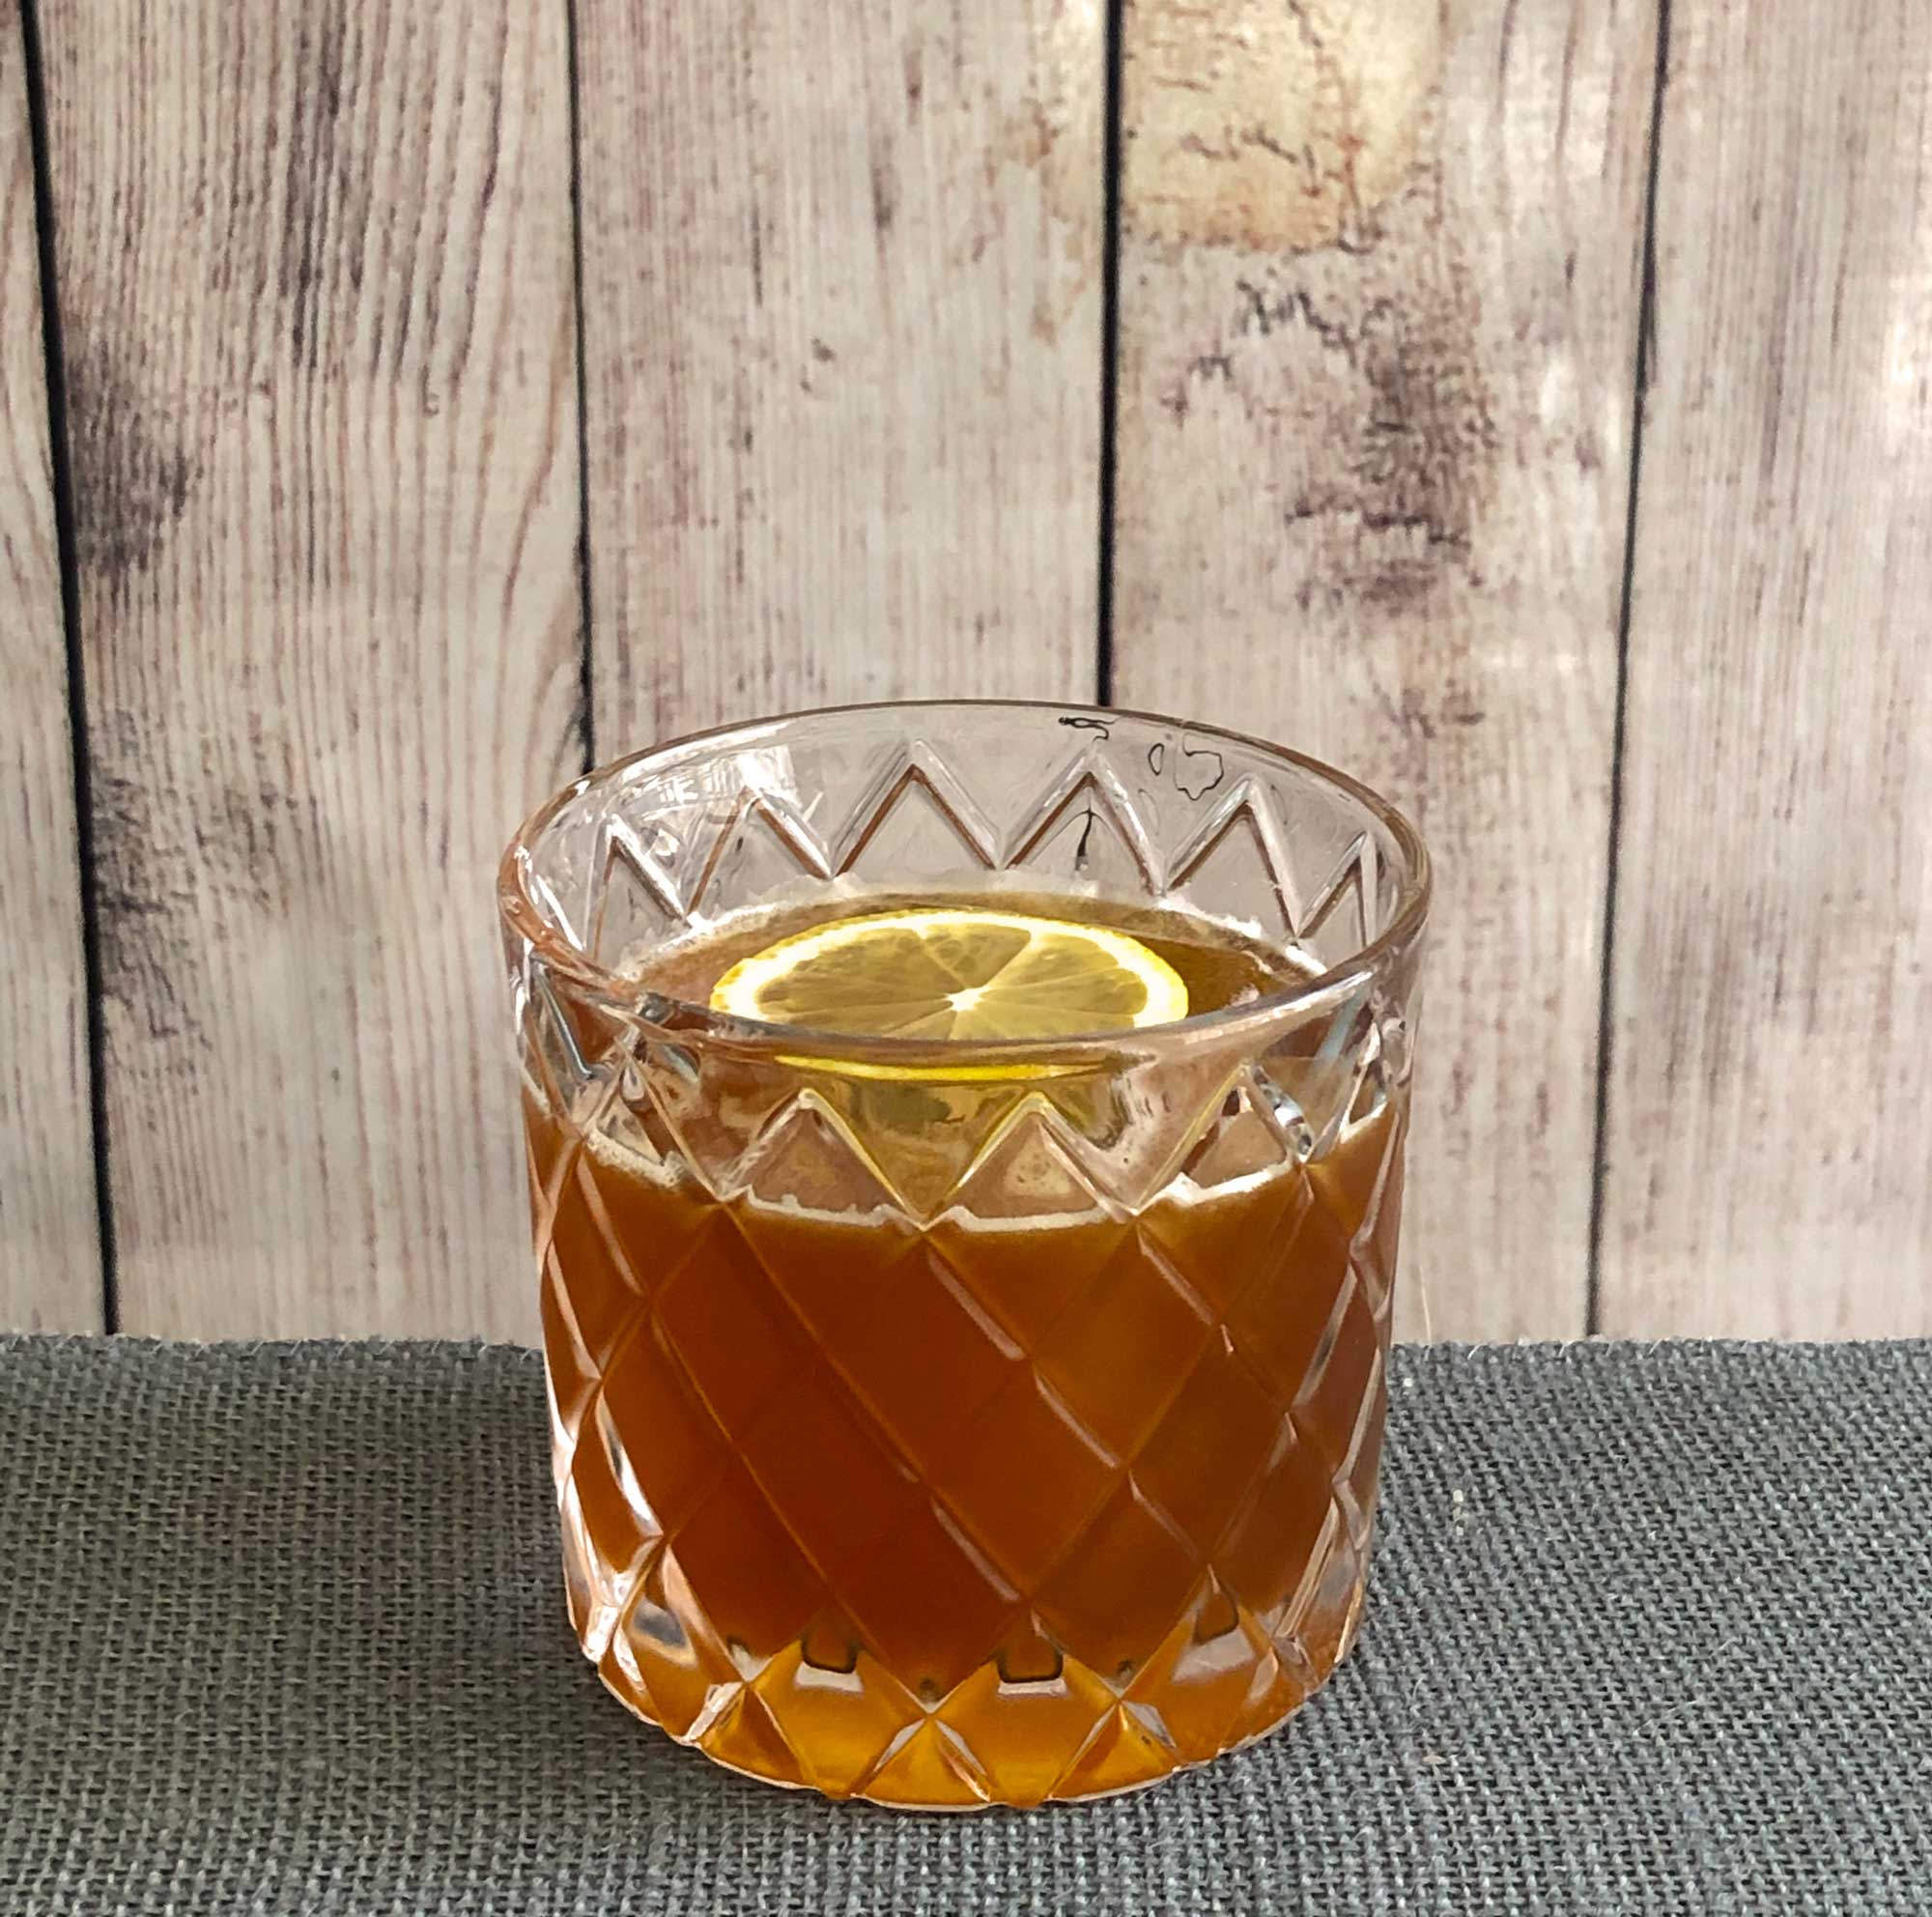 An example of the Campfire Sour, the mixed drink (sour) featuring Amaro Sfumato Rabarbaro, bourbon whiskey, and lemon juice; photo by Lee Edwards